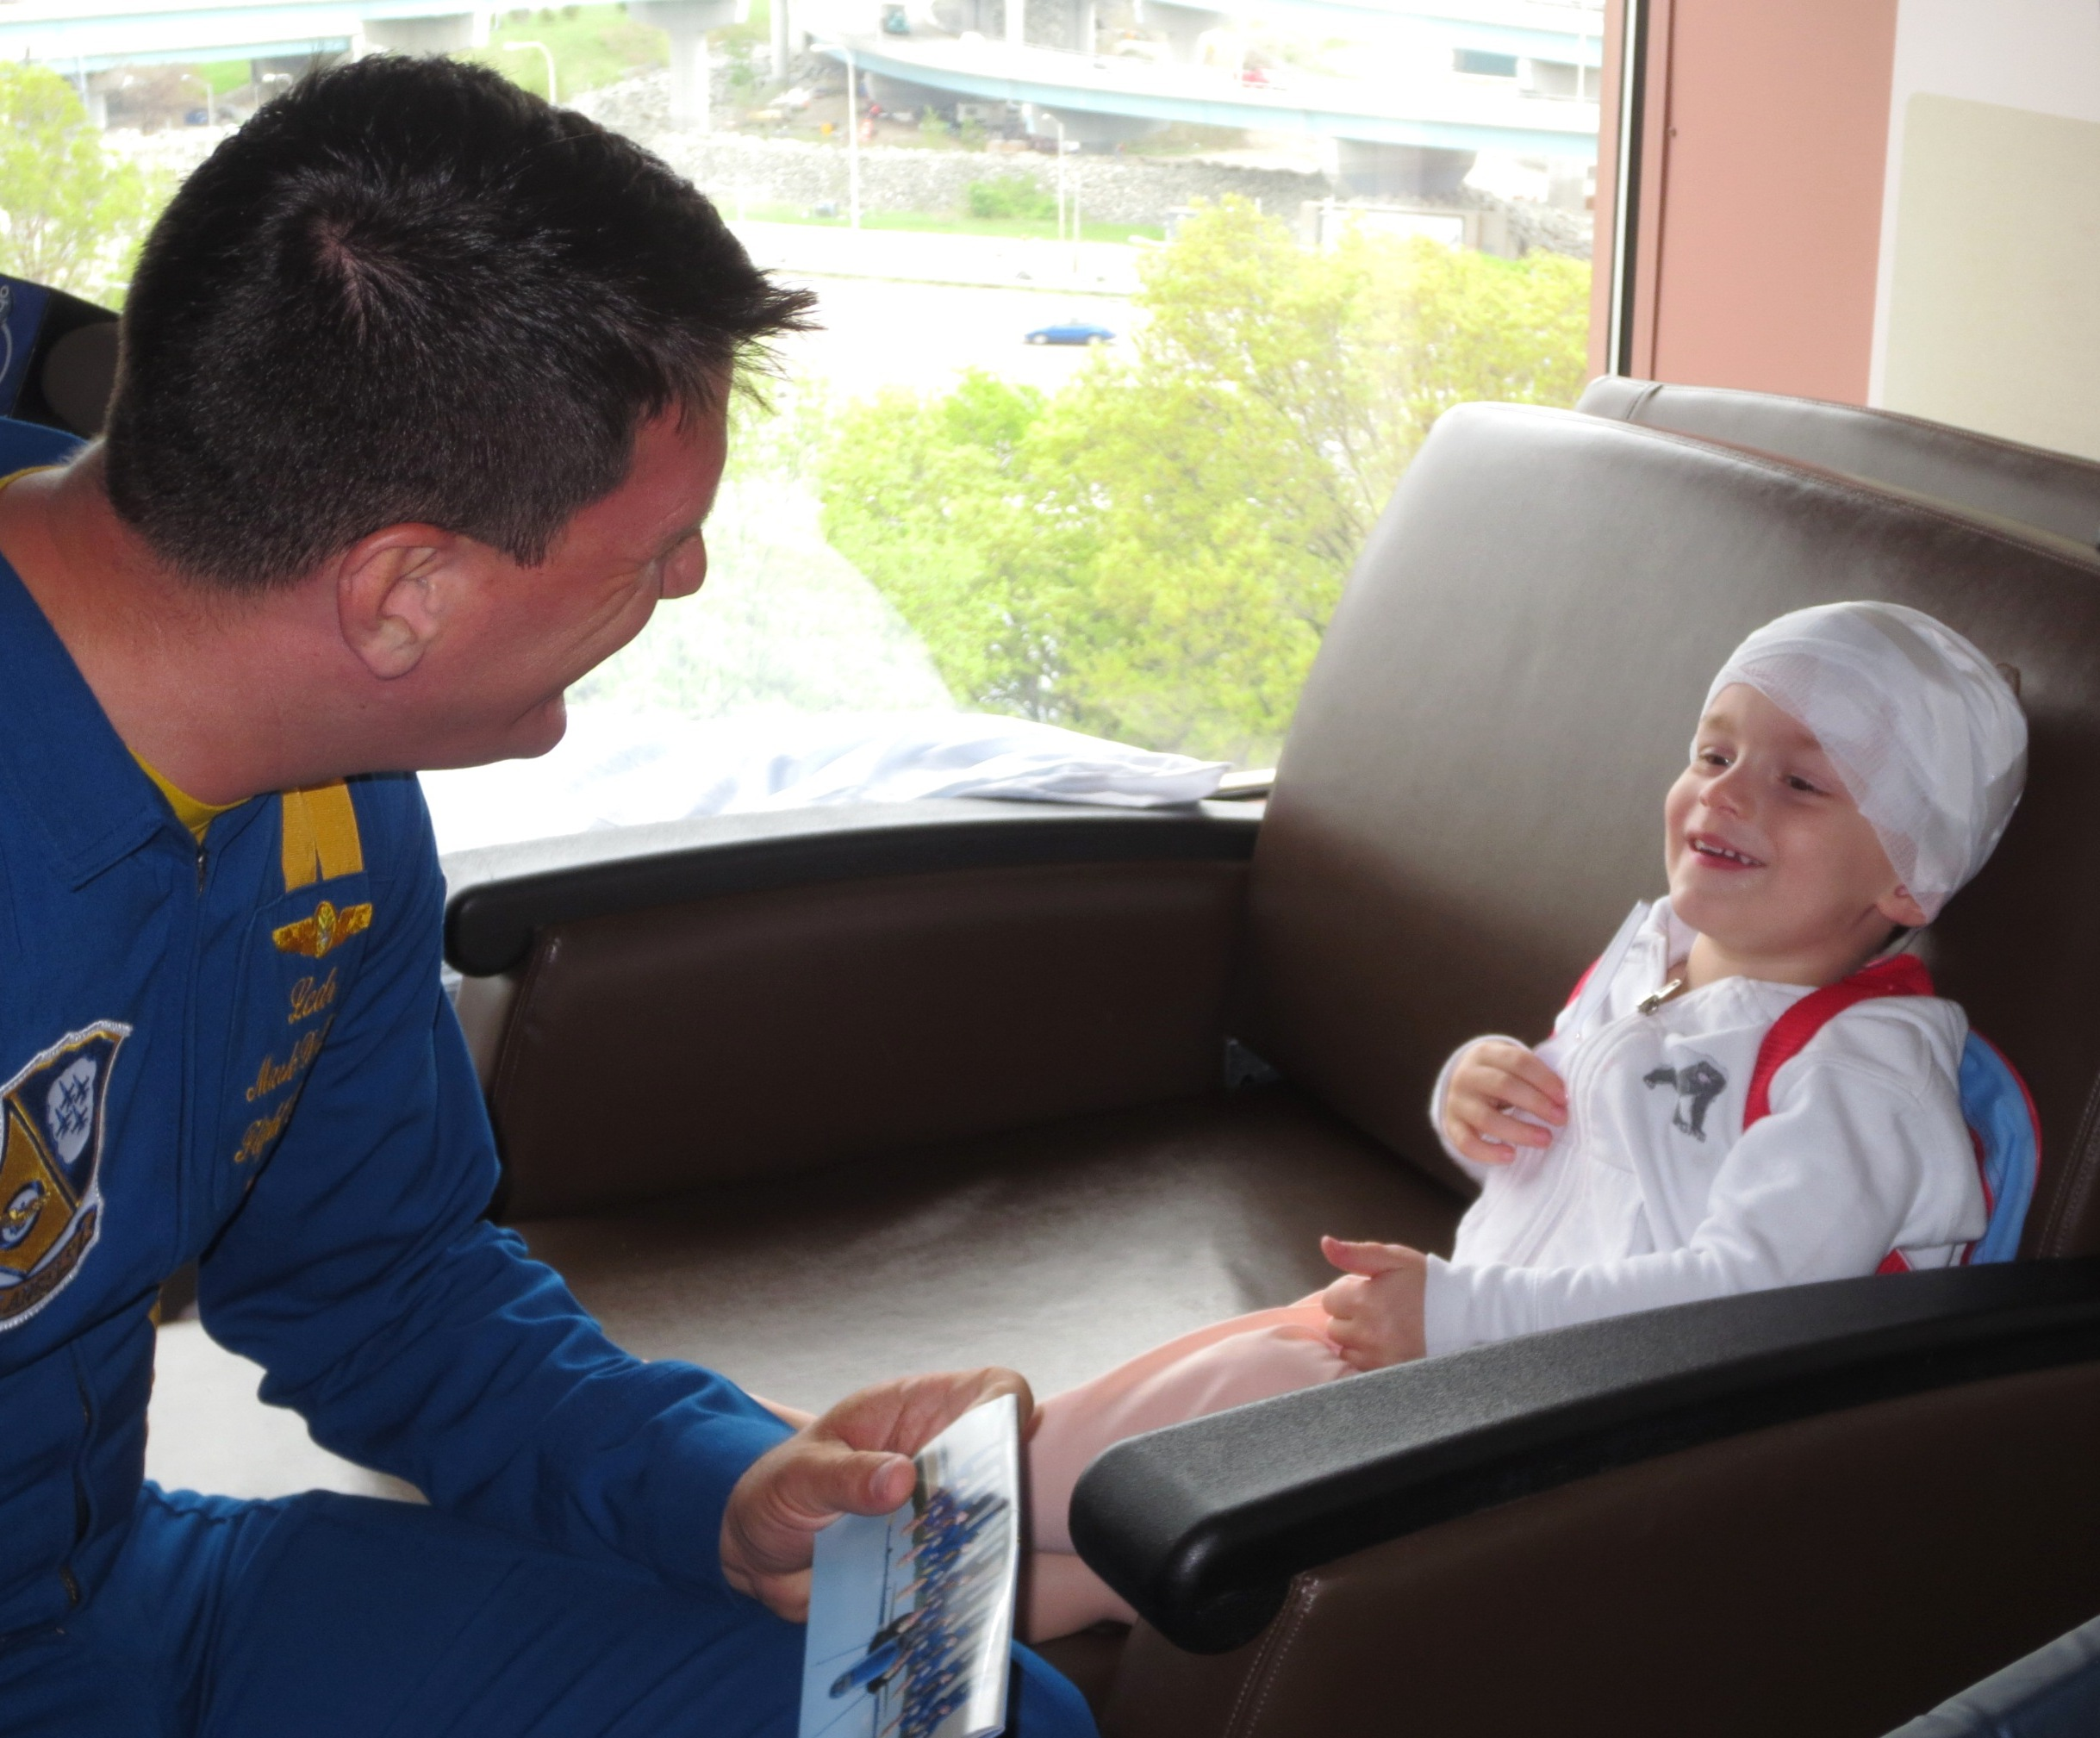 Sharing a Smile: Mark DeBuse, MD, Lt. Commander, U.S. Navy Flight Surgeon and Blue Angels pilot enjoys a moment with Connor Urban during his visit to Hasbro Children's Hospital on Friday, May 16.